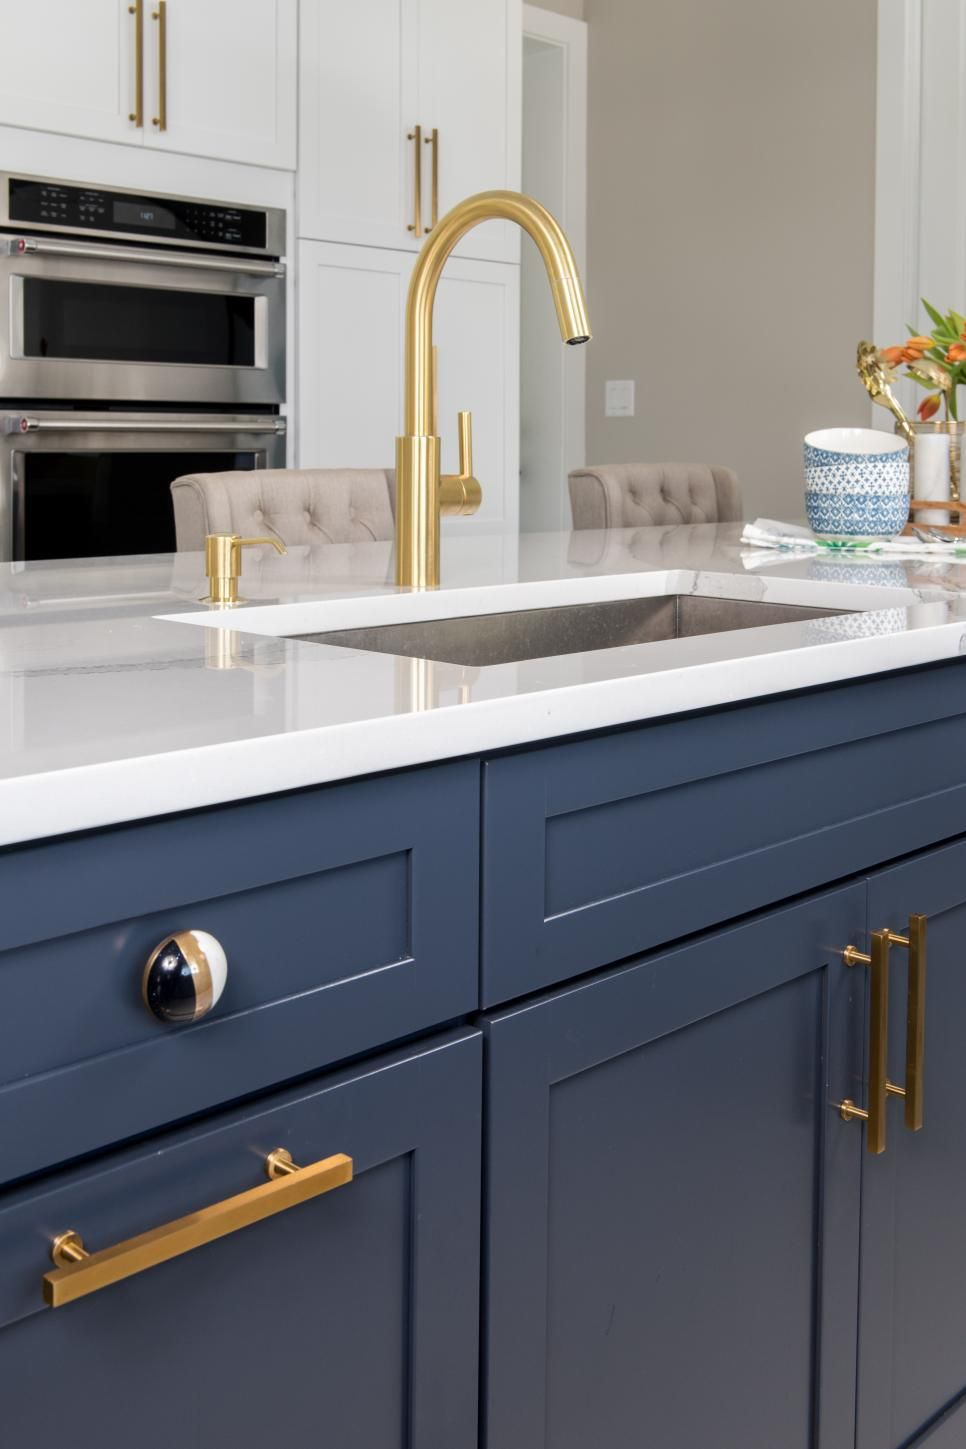 Curved Faucet In Blue Kitchen Island With Quartz Countertop With